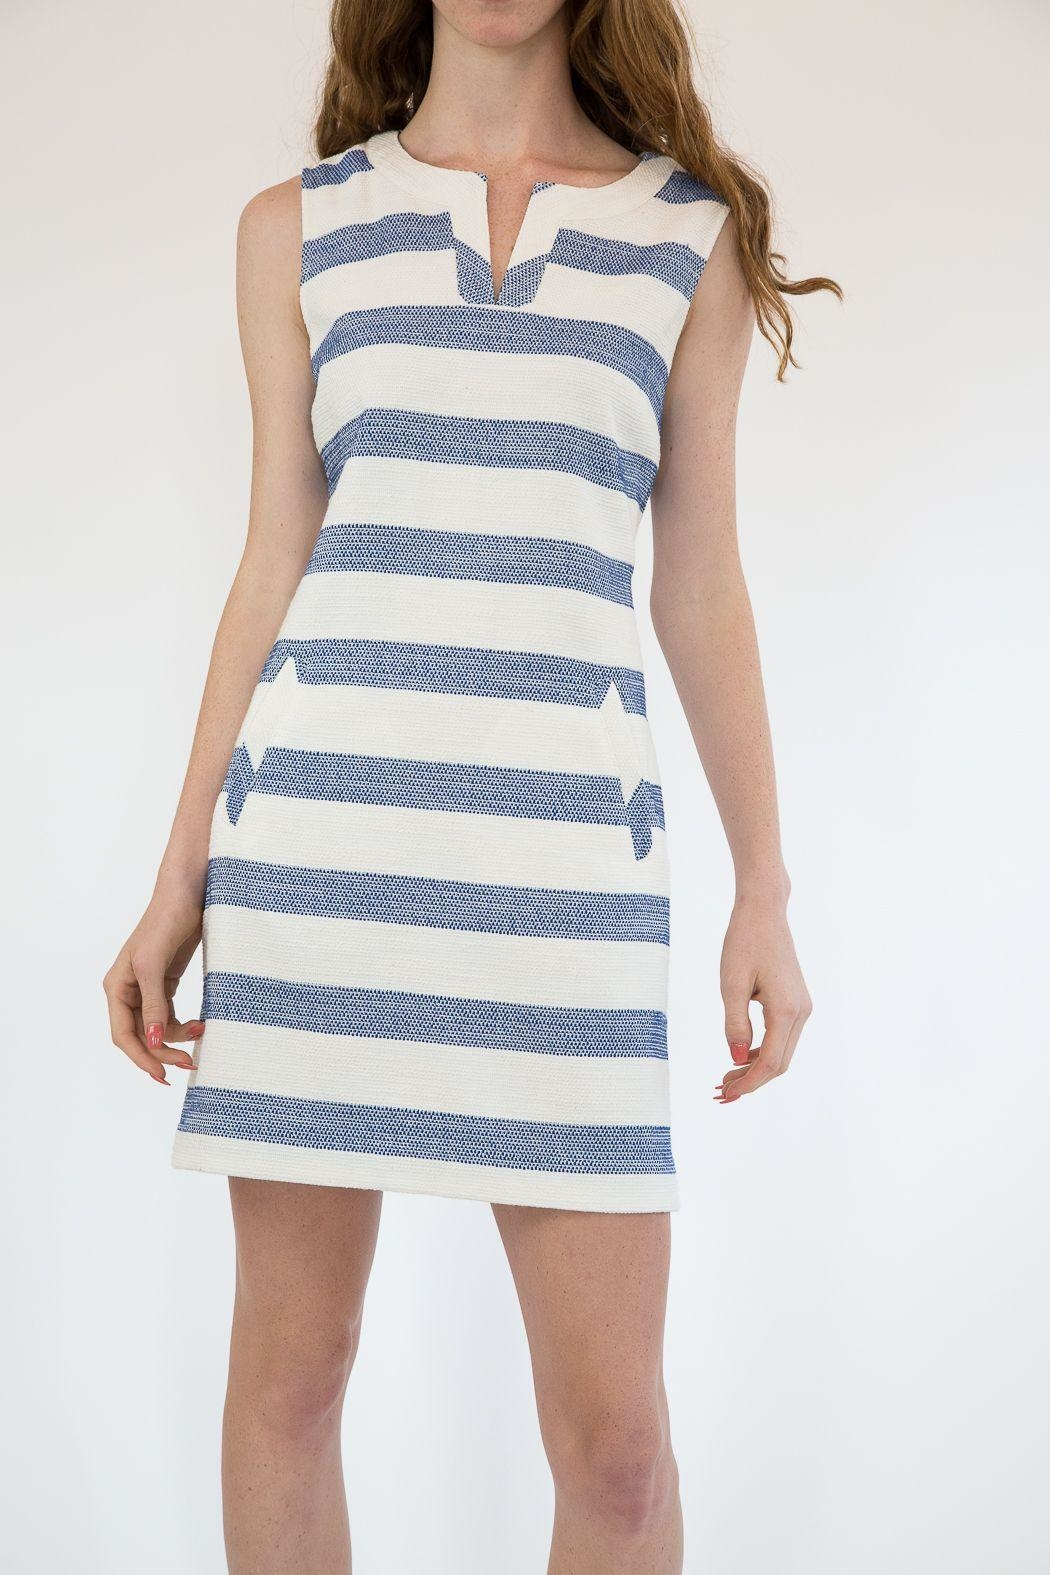 Southern Tide Hallie Dress - Main Image